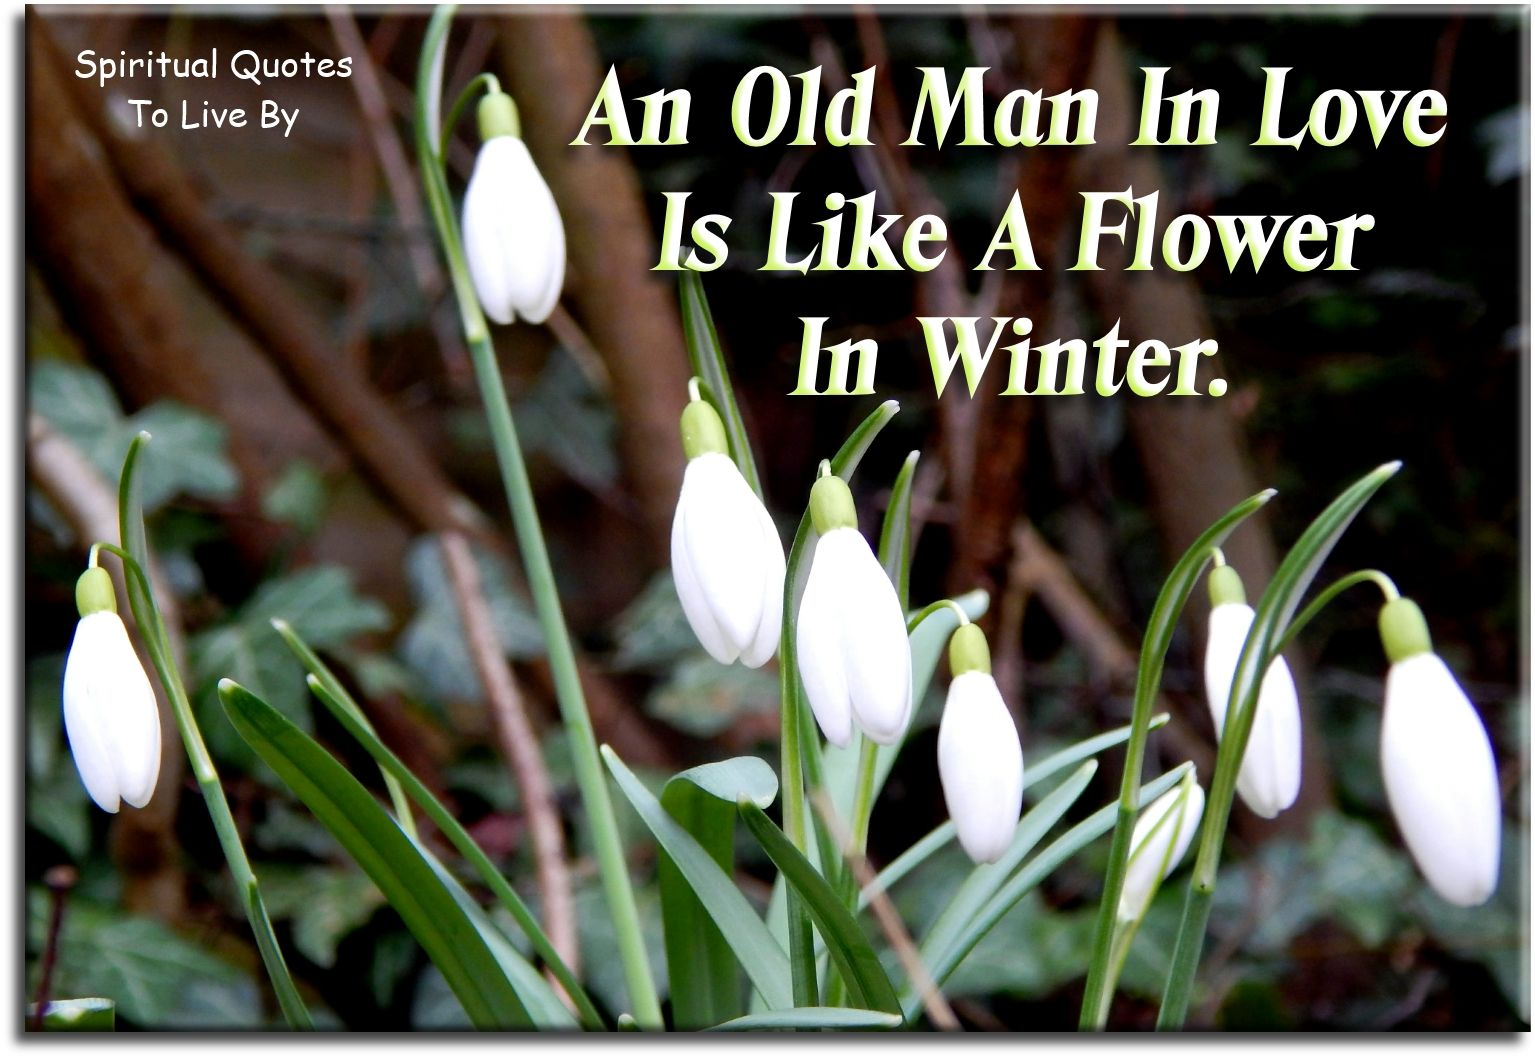 An Old Man In Love Is Like A Flower In Winter Unknown Spiritual